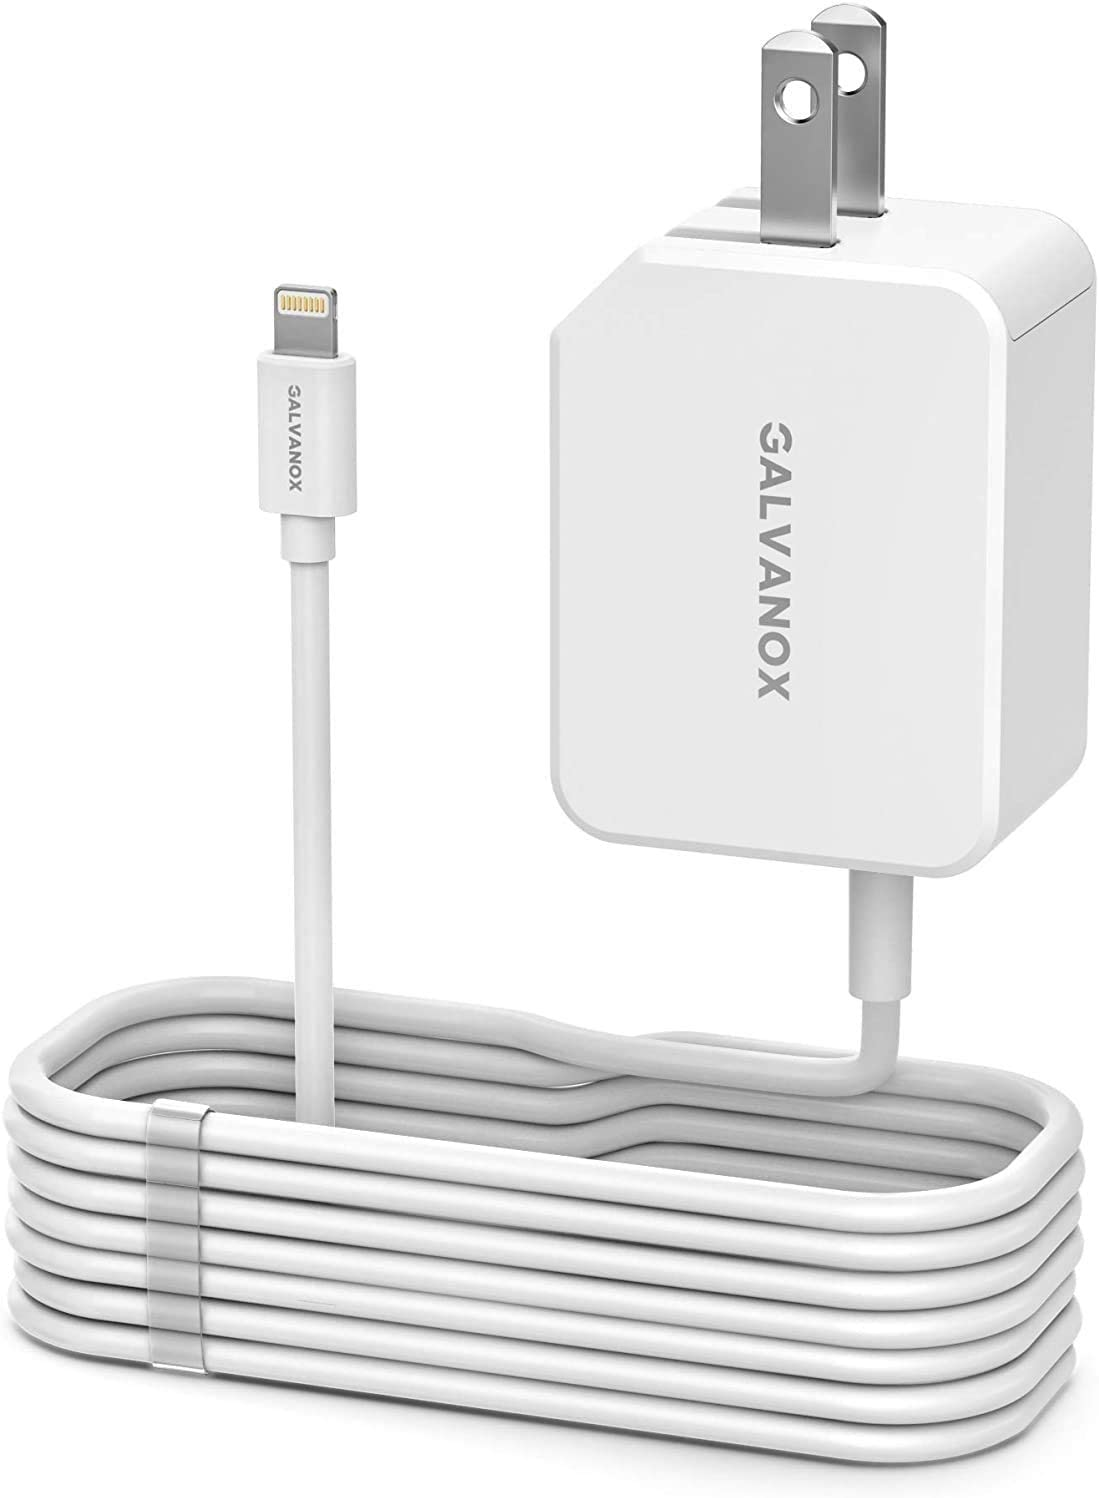 (MFi Apple Certified) Galvanox 1-PC Lightning Fast iPhone Wall Charger (20W Power Delivery Technology)